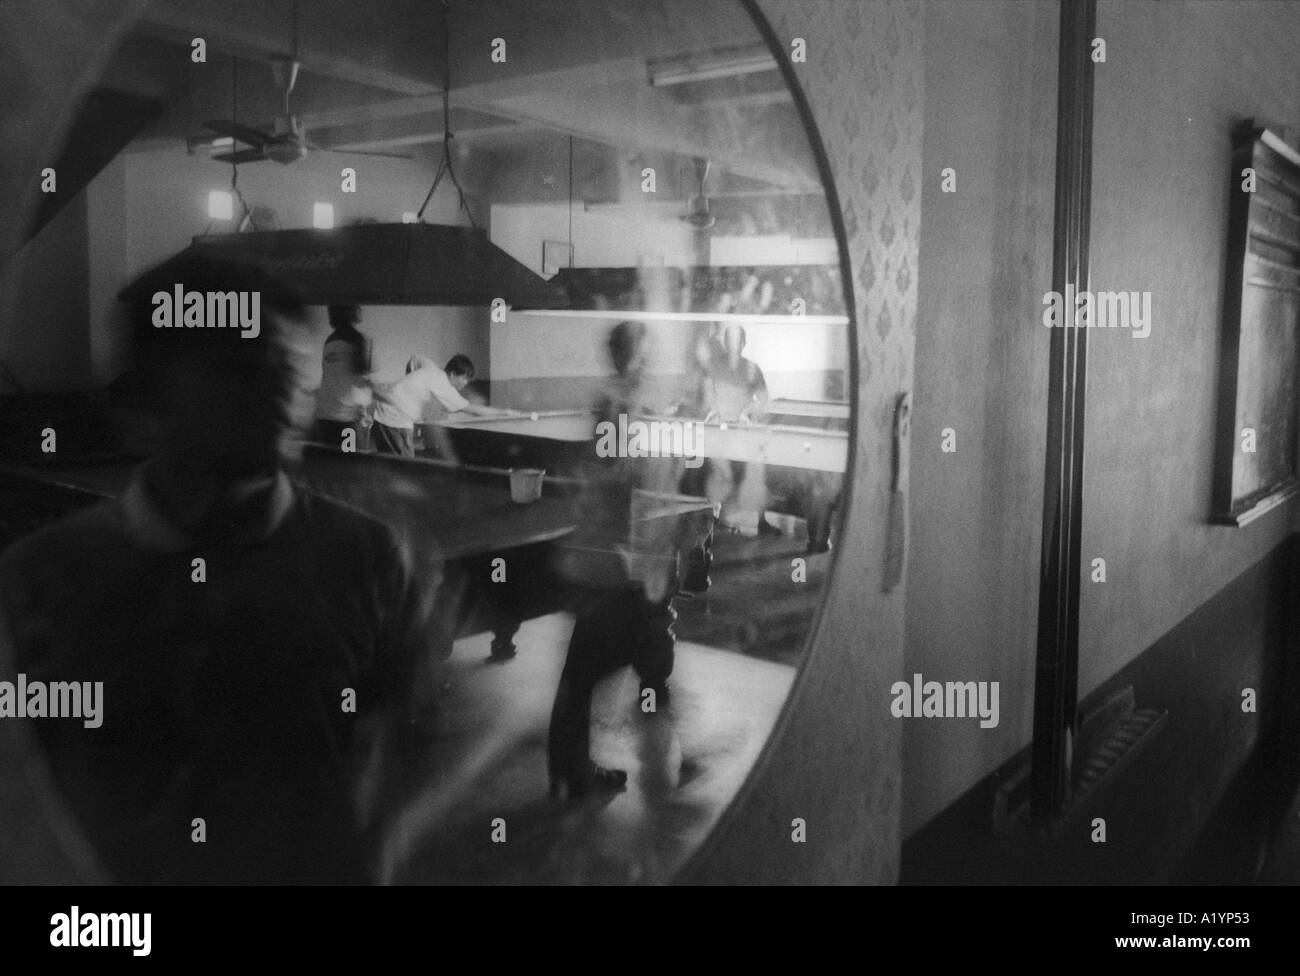 Burmese and ethnic workers play pool in Ranong Thailand Ranong is a infamous port town and a known entry for drugs being traffic - Stock Image